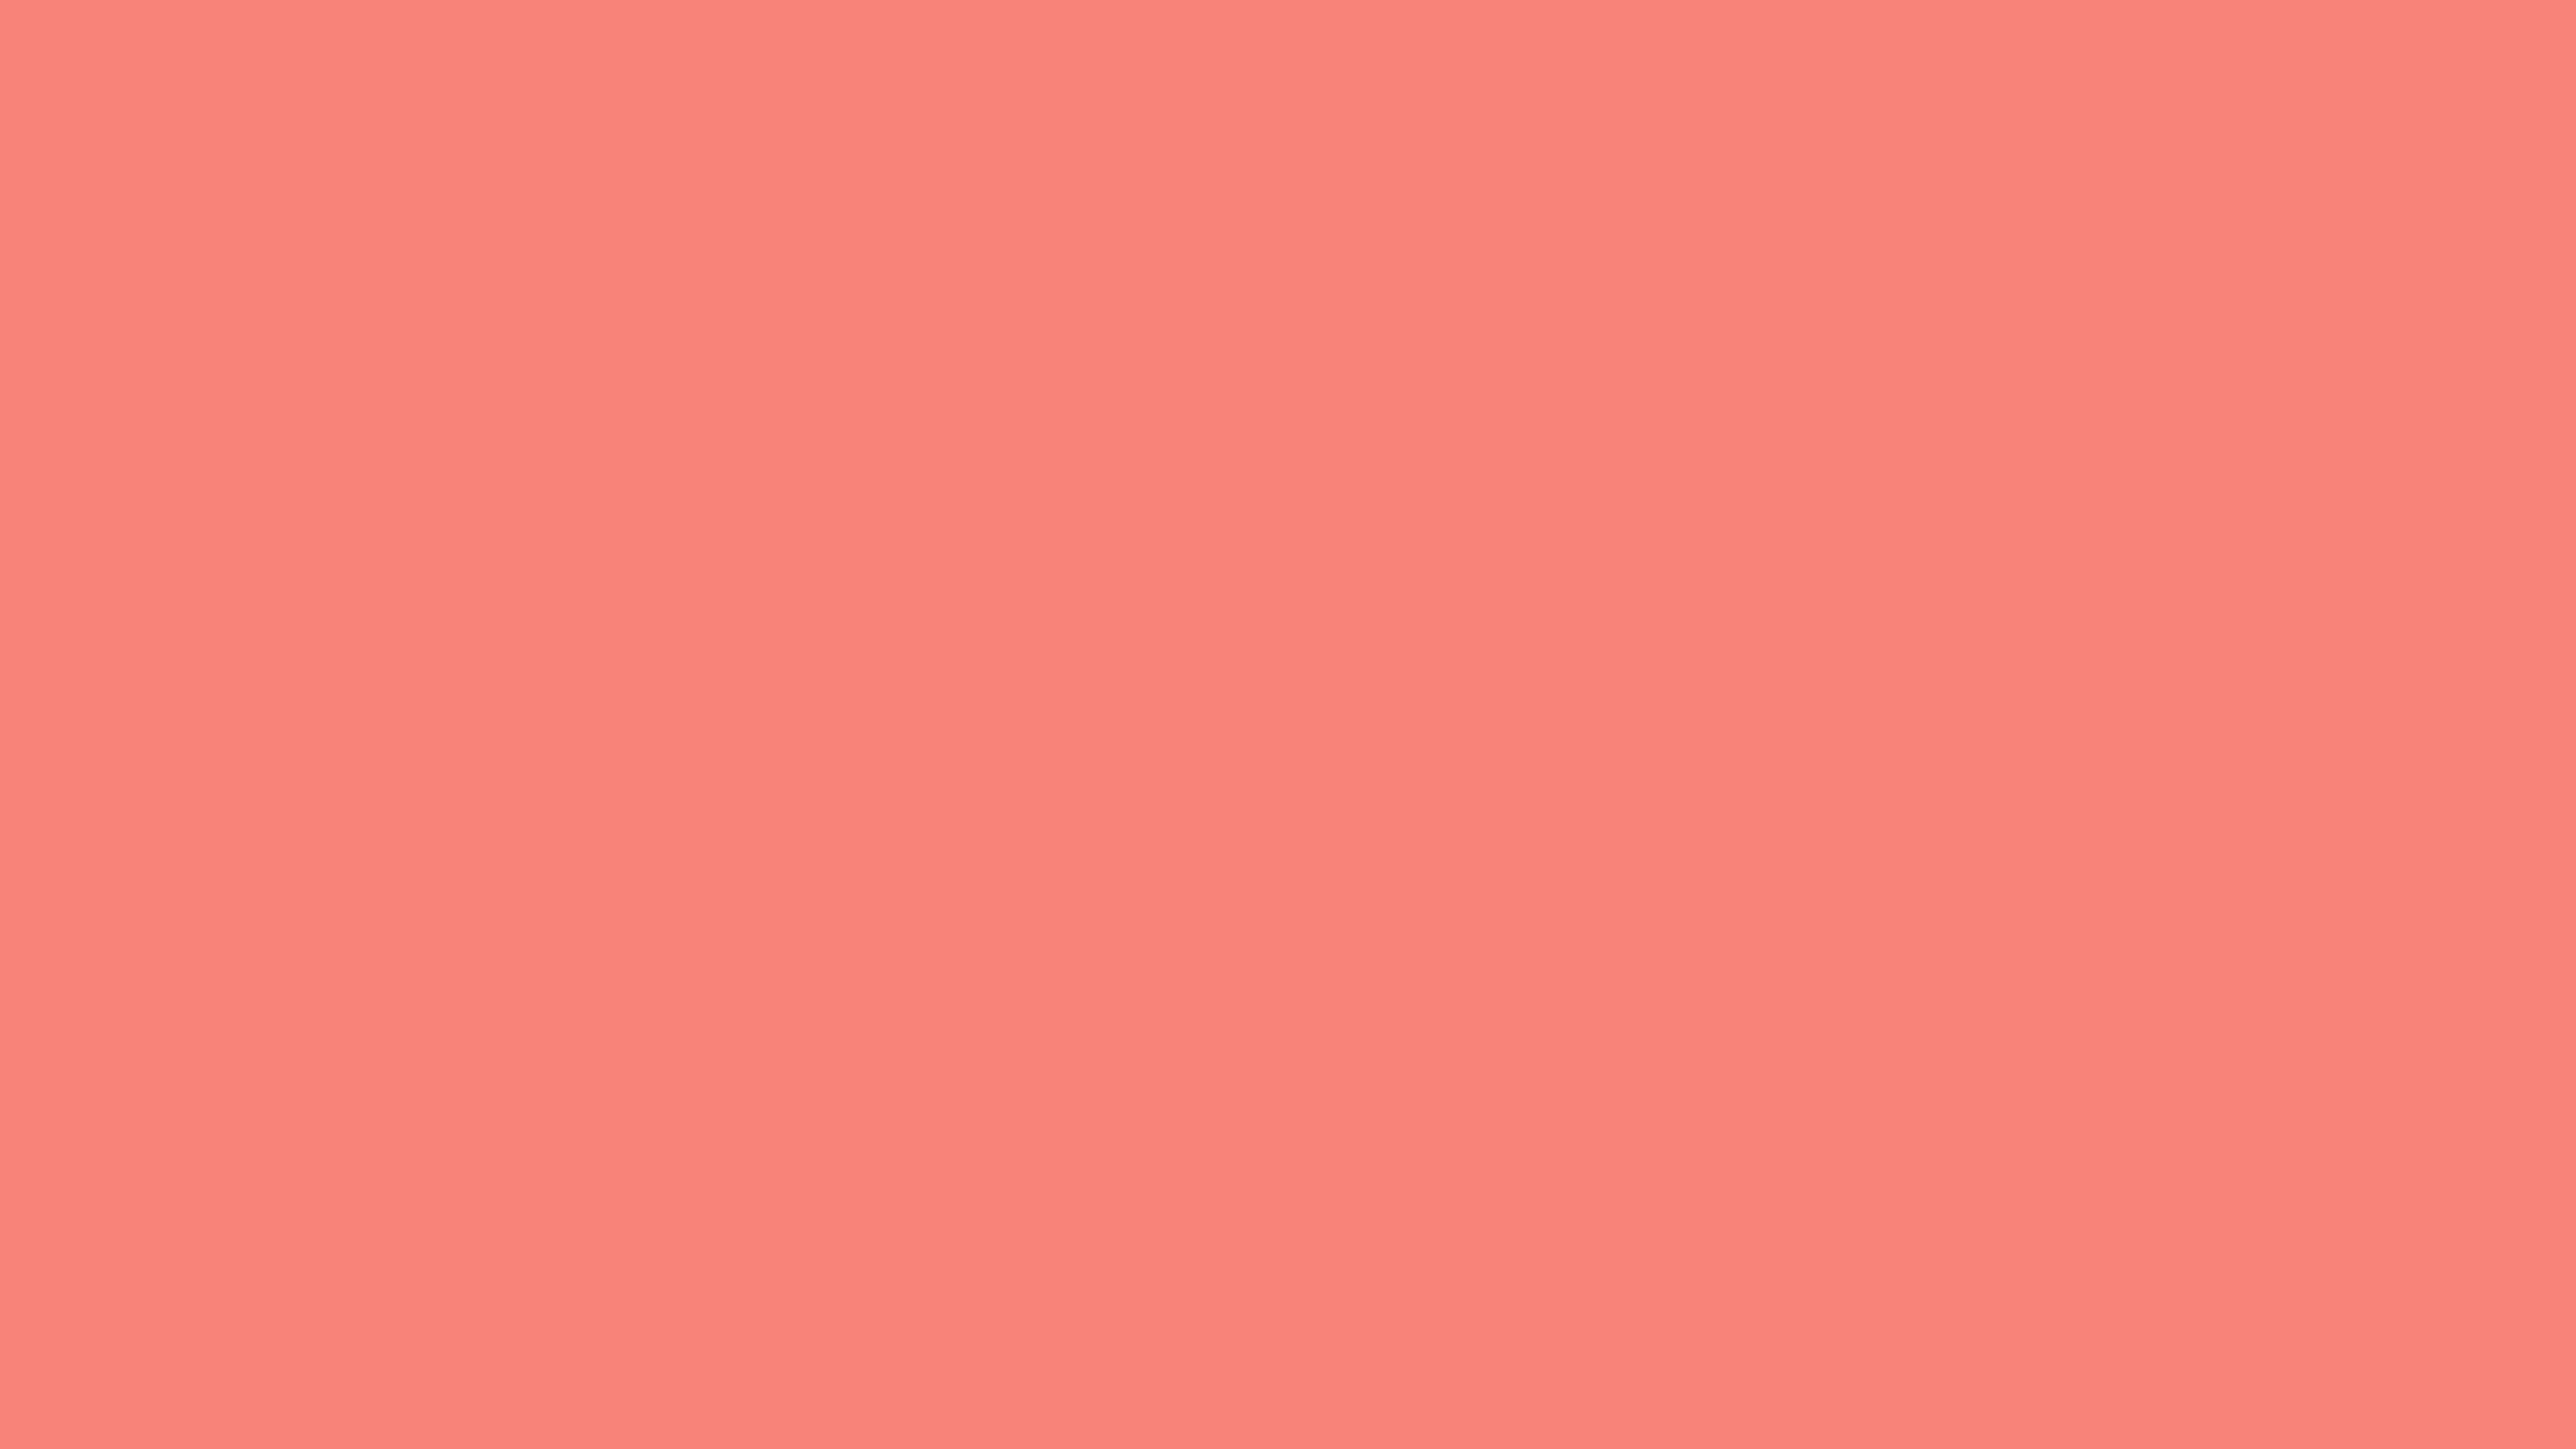 4096x2304 Tea Rose Orange Solid Color Background